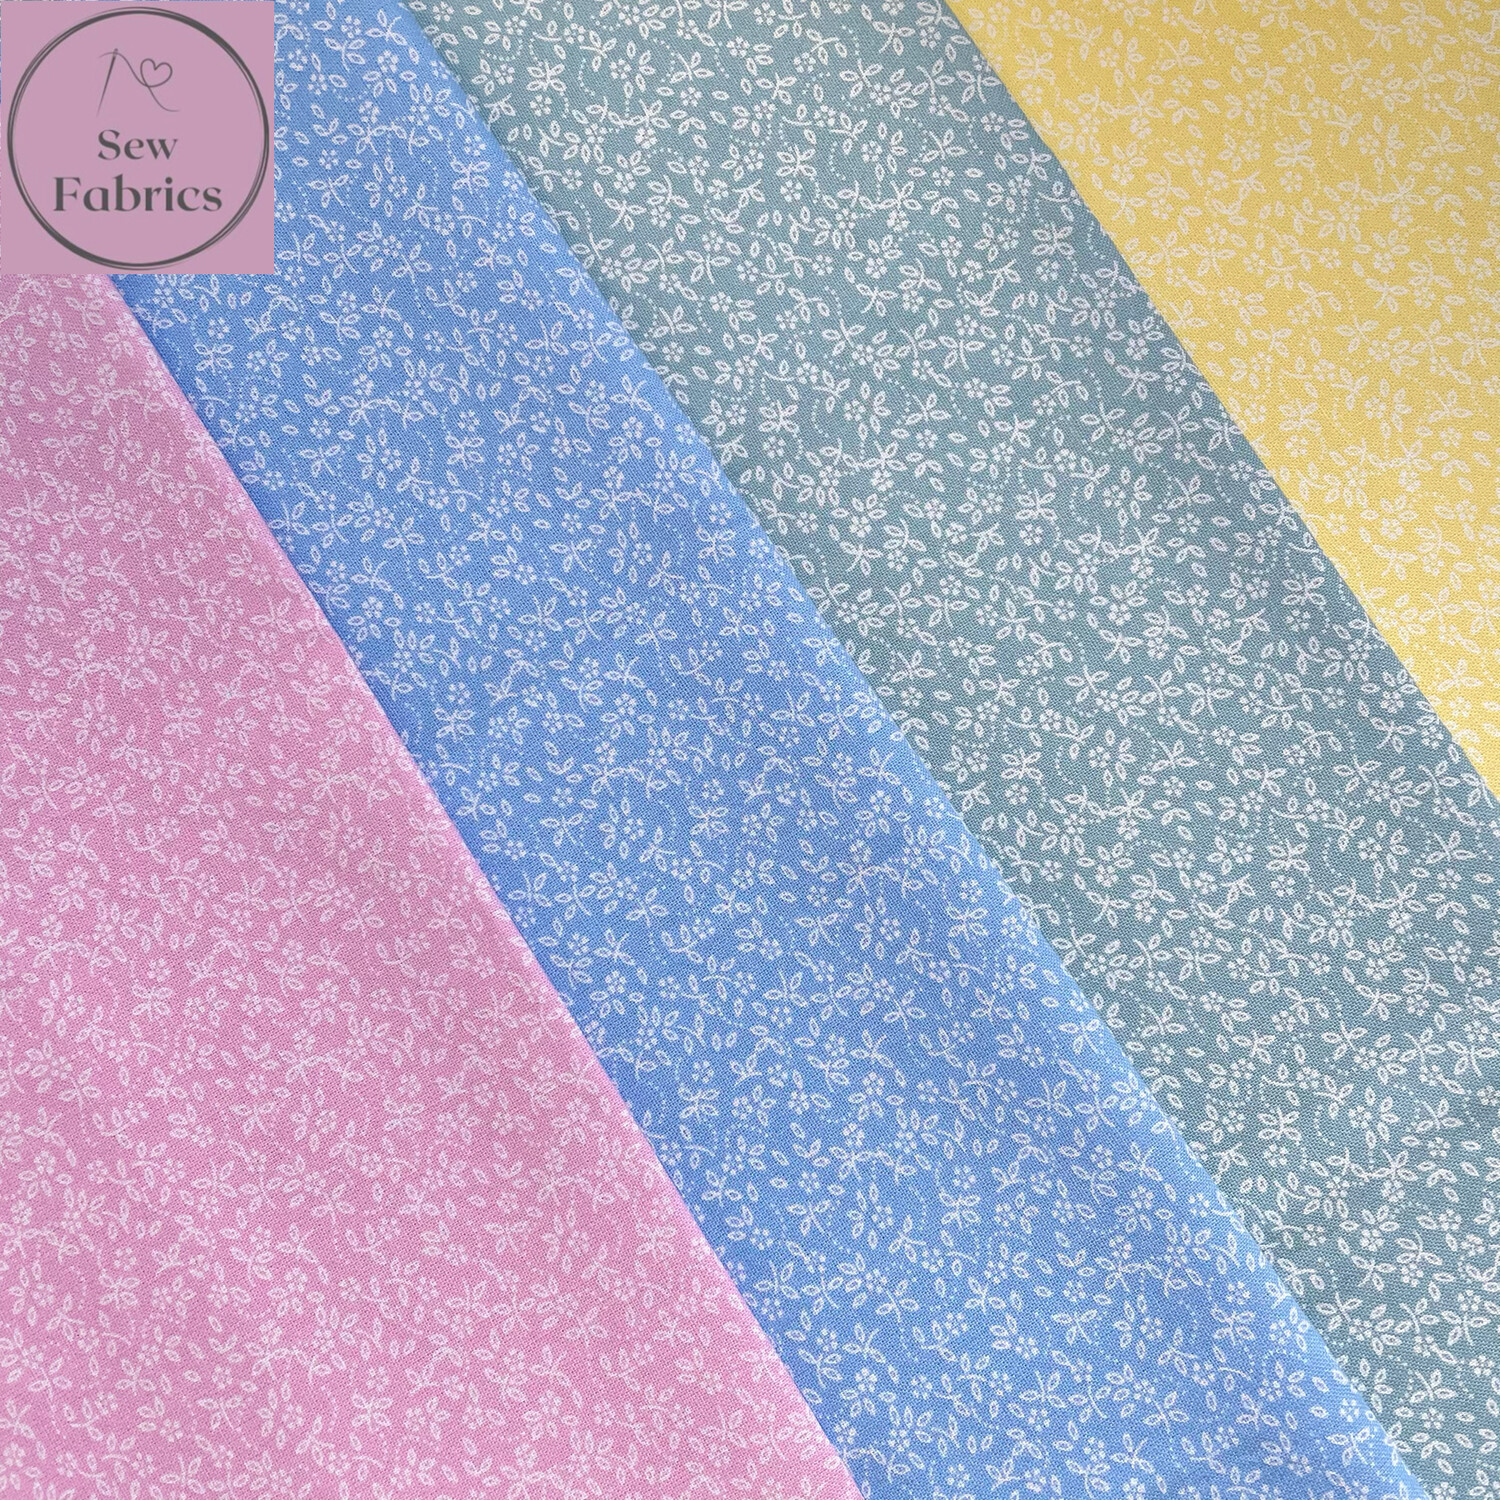 100% Craft Cotton Ditsy Daisy Fabric 4 x Fat Quarter Bundle, Pastel Spring Summer Quilting, Crafting, Floral